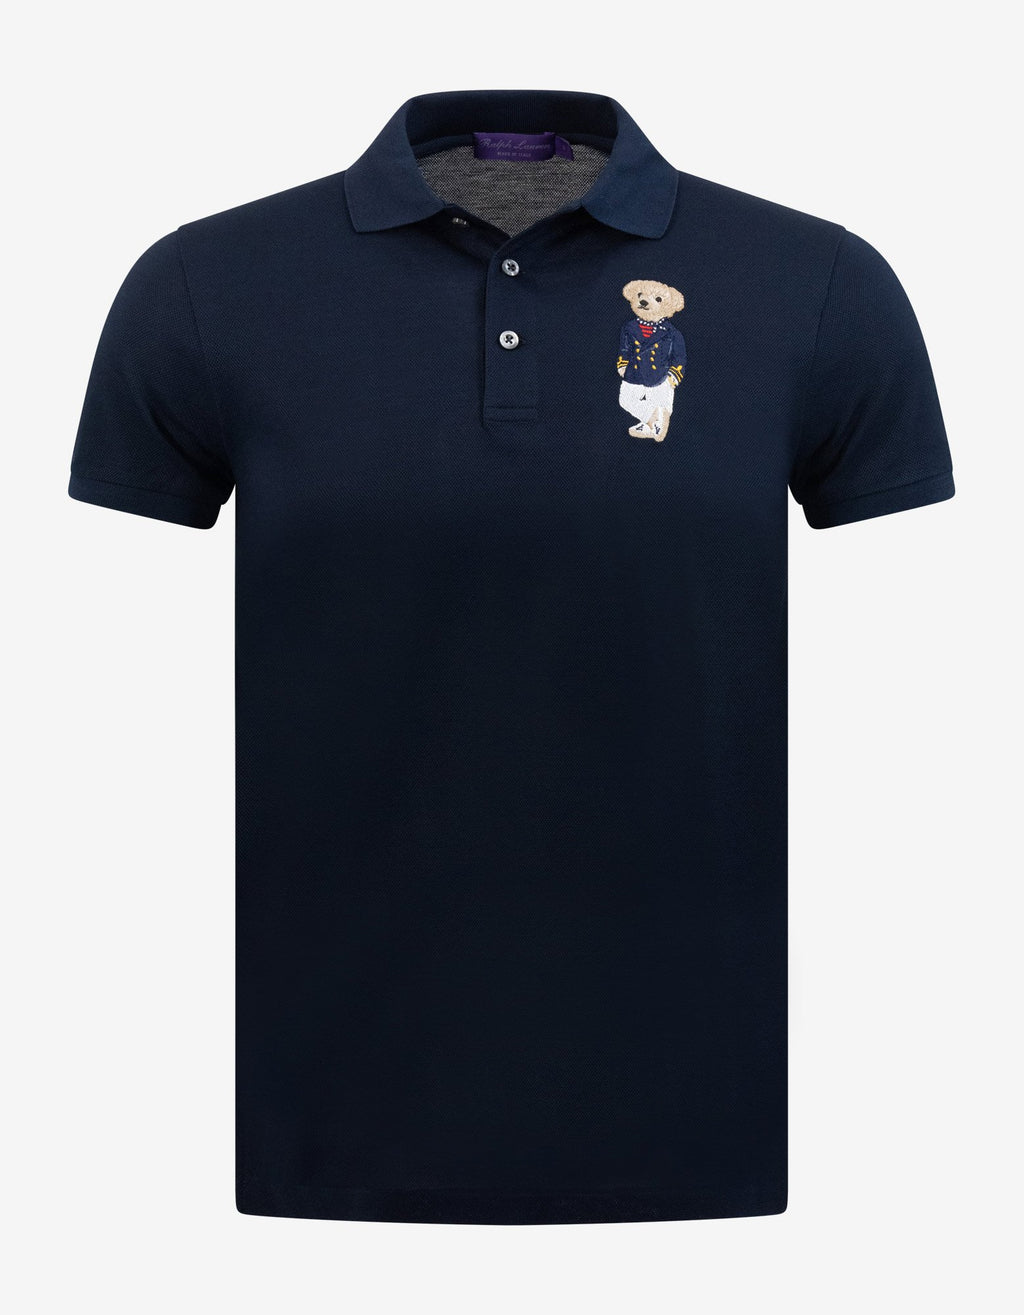 Navy Blue Bear Embroidery Polo T-Shirt -